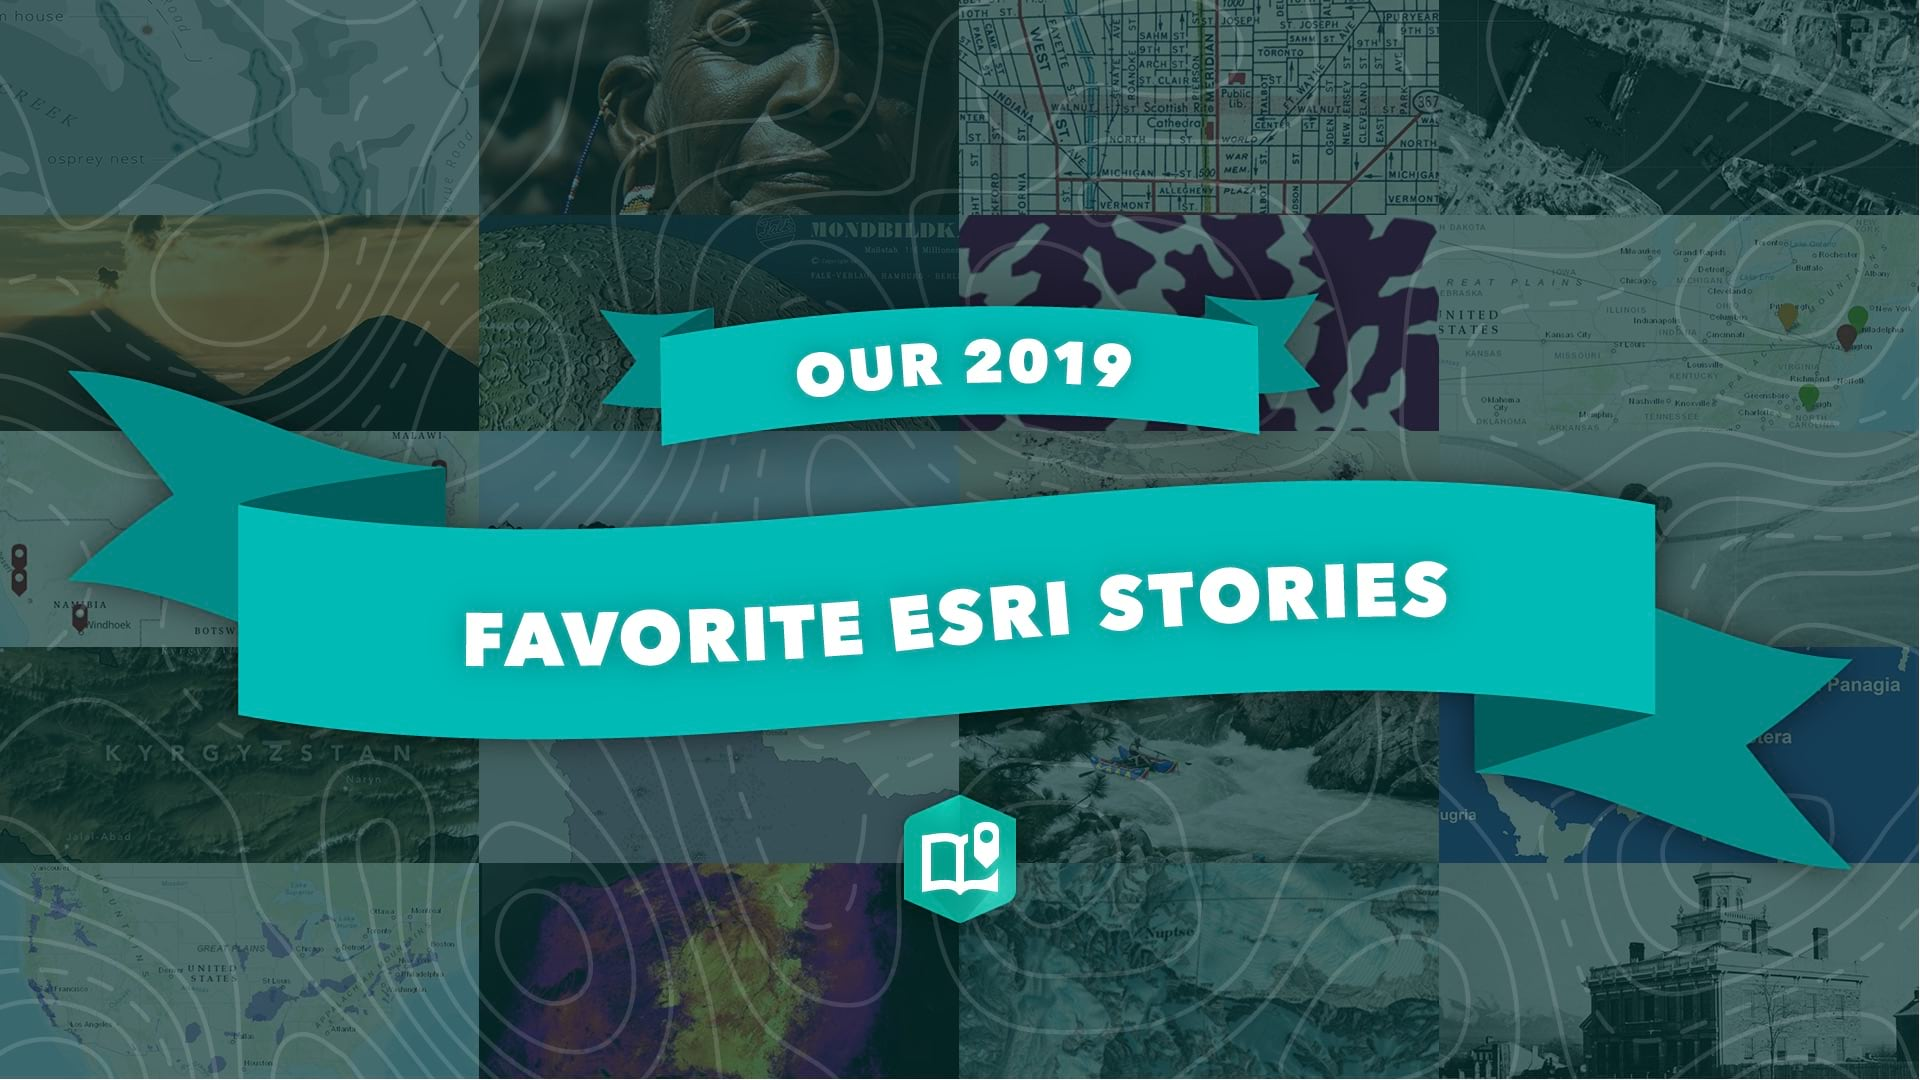 A graphical image to promote the 2019 Esri stories collection